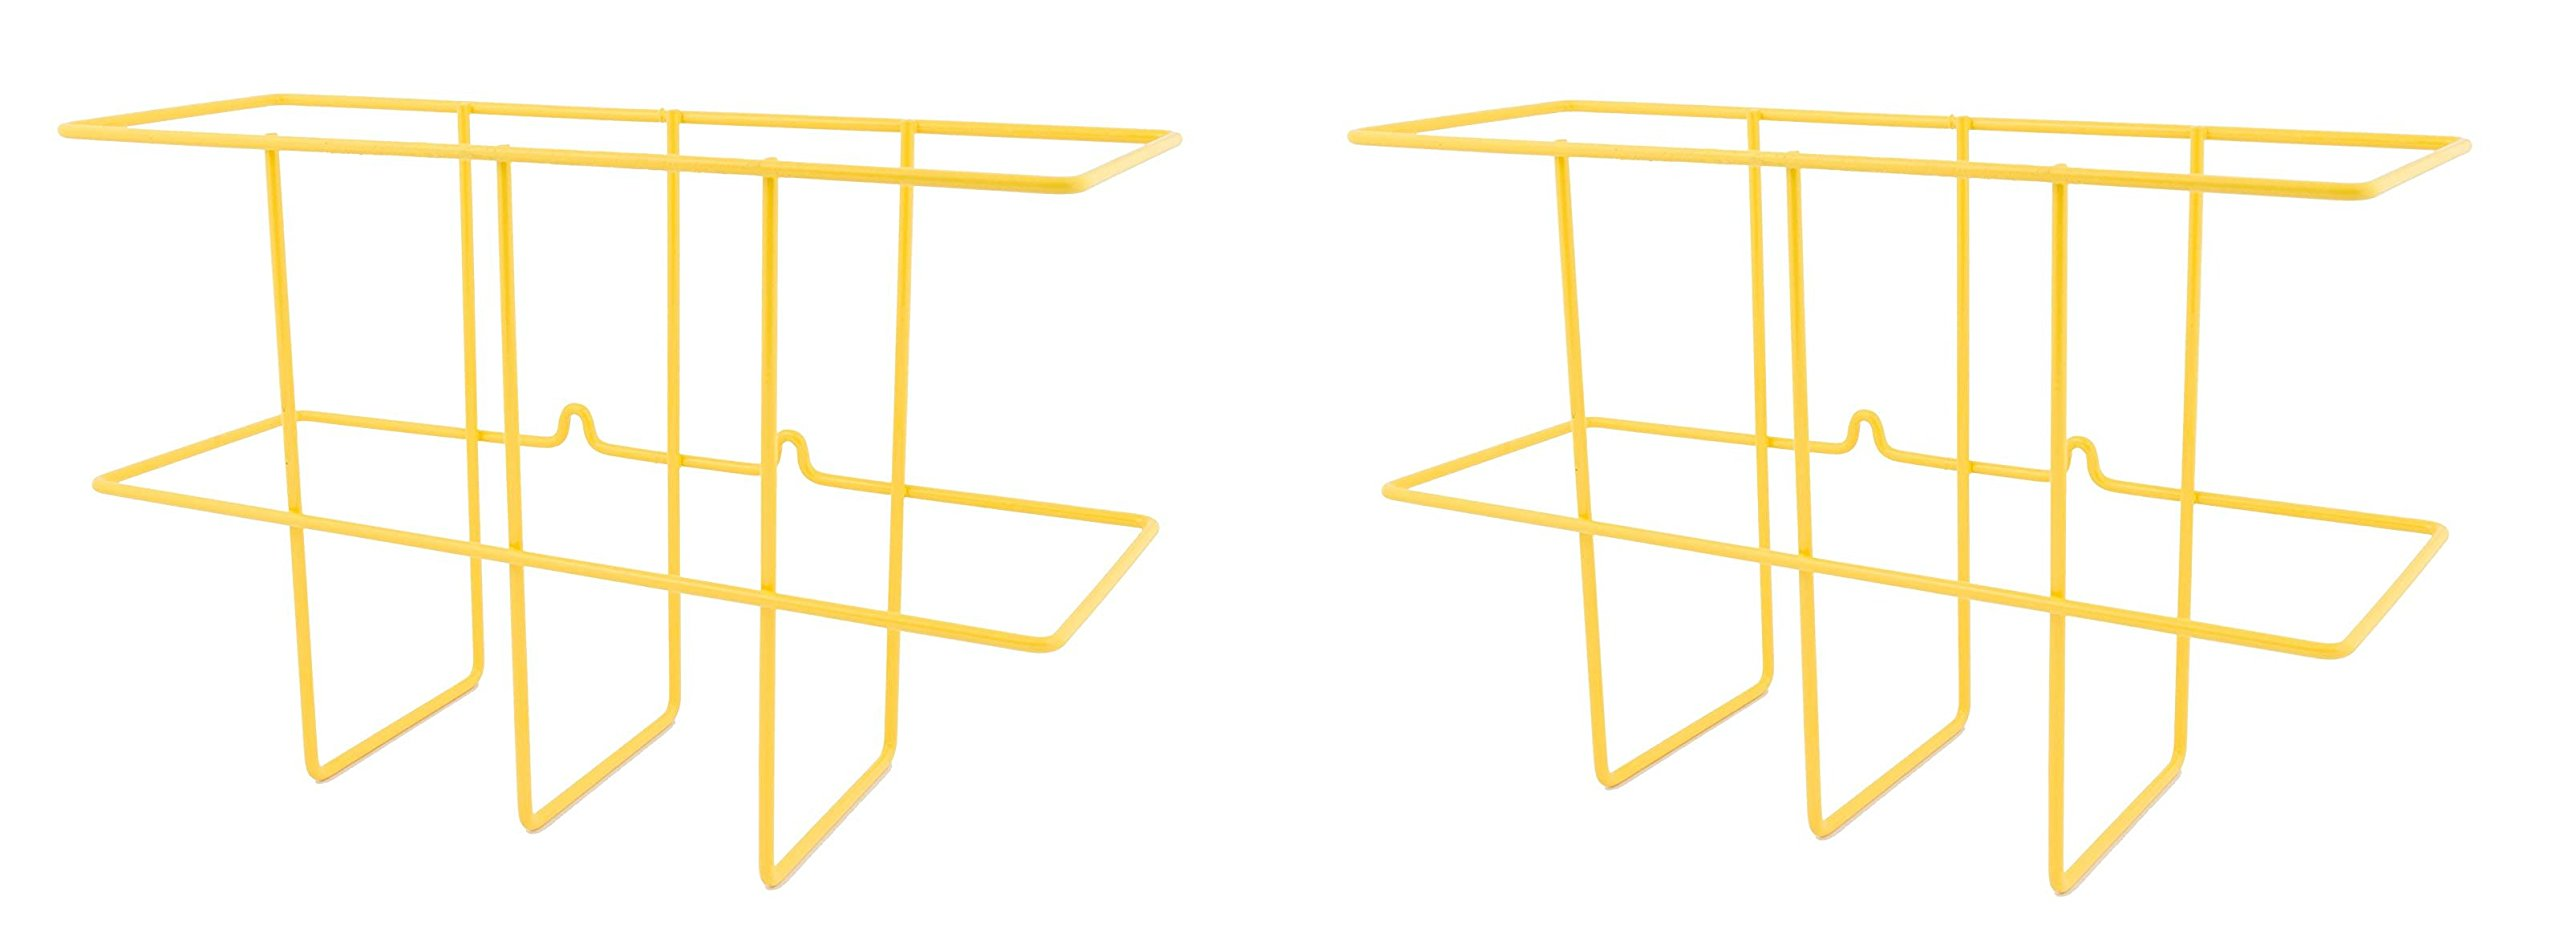 ZING 7199 Eco Binder Holder, Wire Wall Rack, Hardware Included (2-Pack)